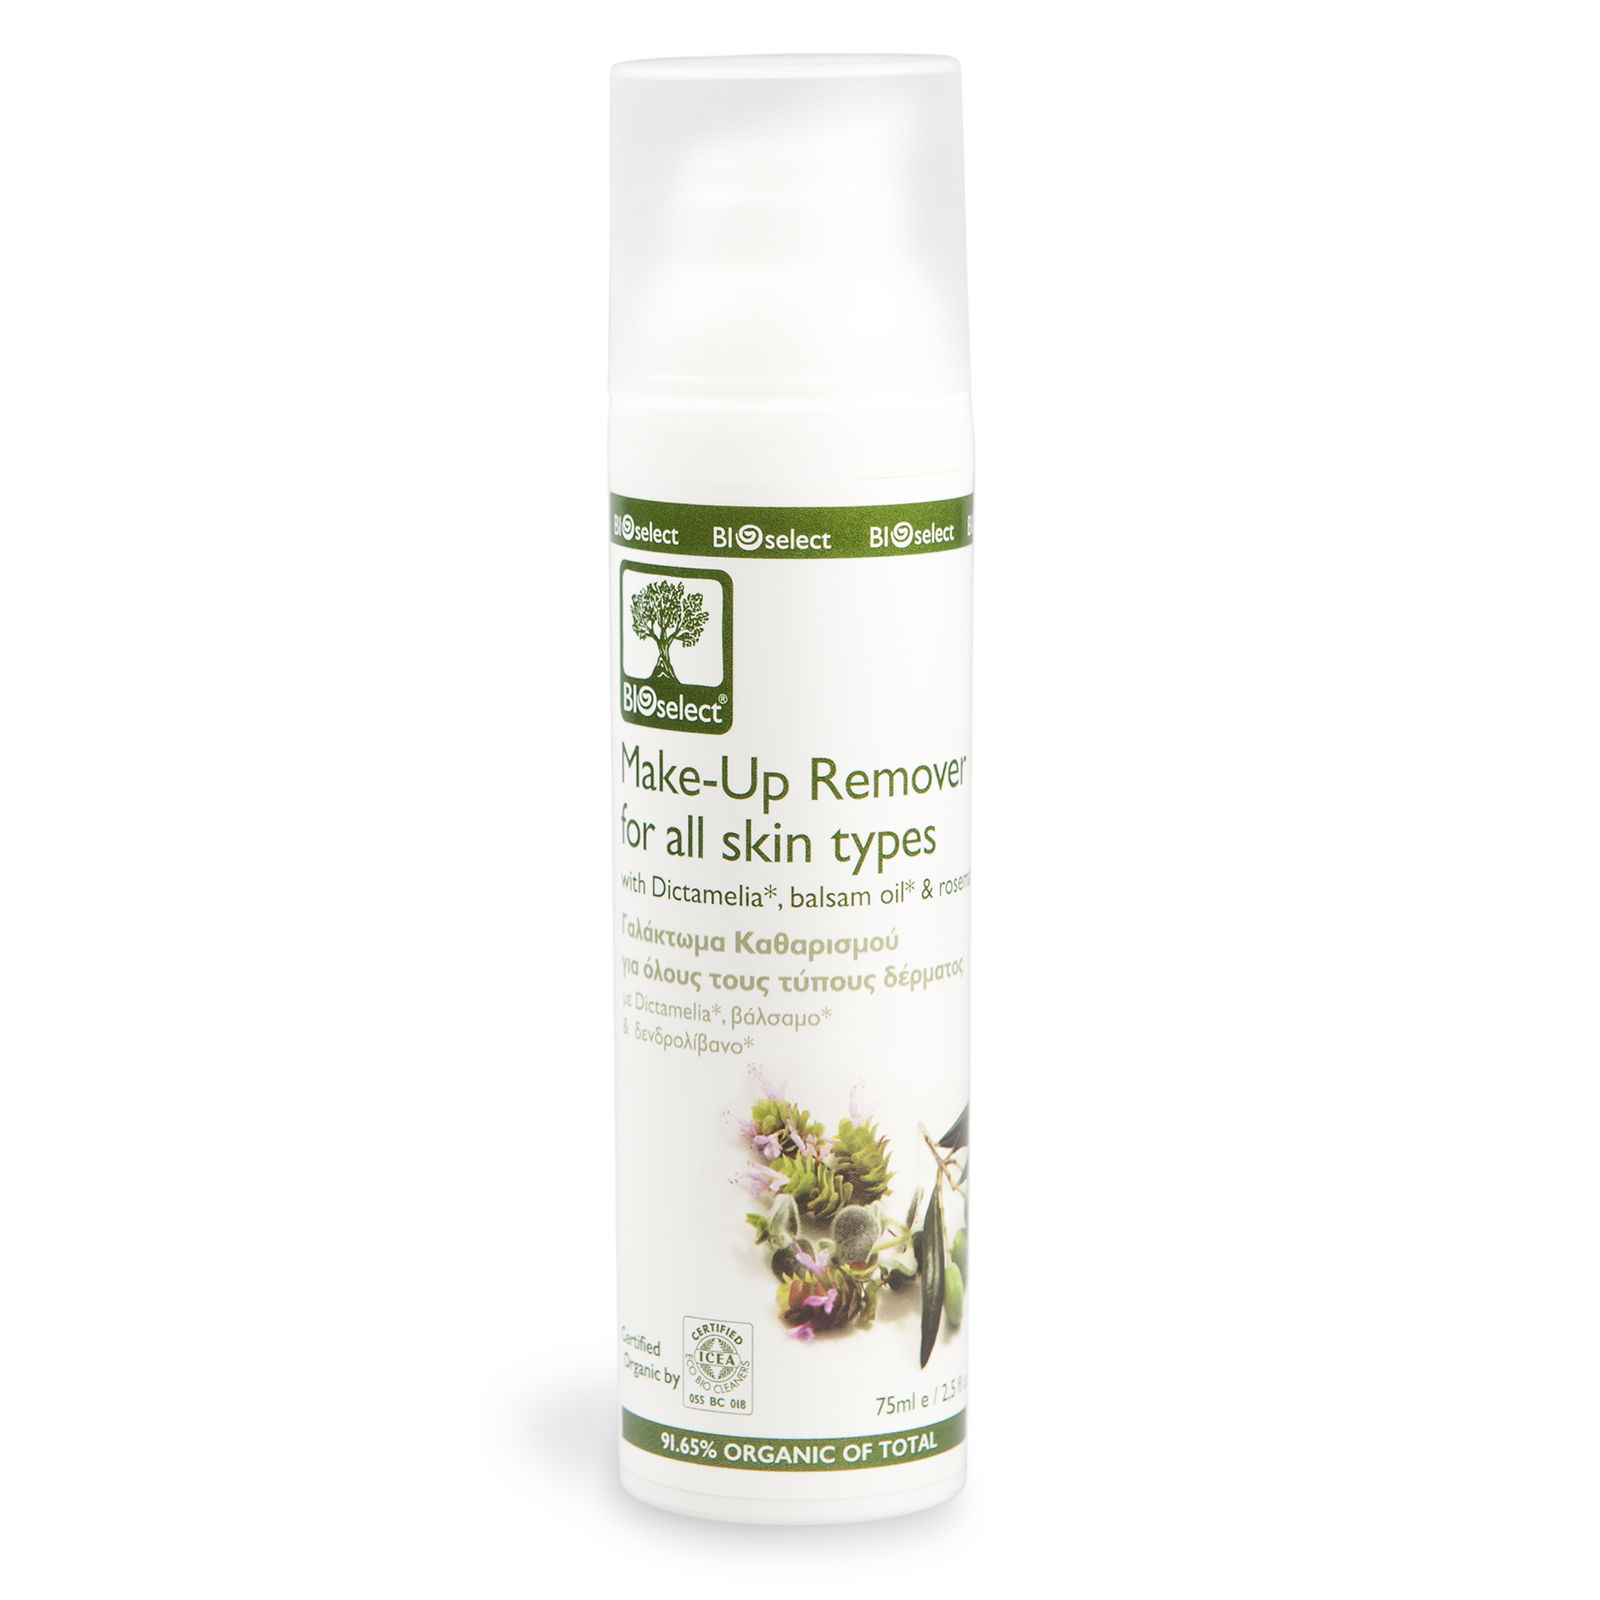 Bioselect Make-Up Remover for all skin types